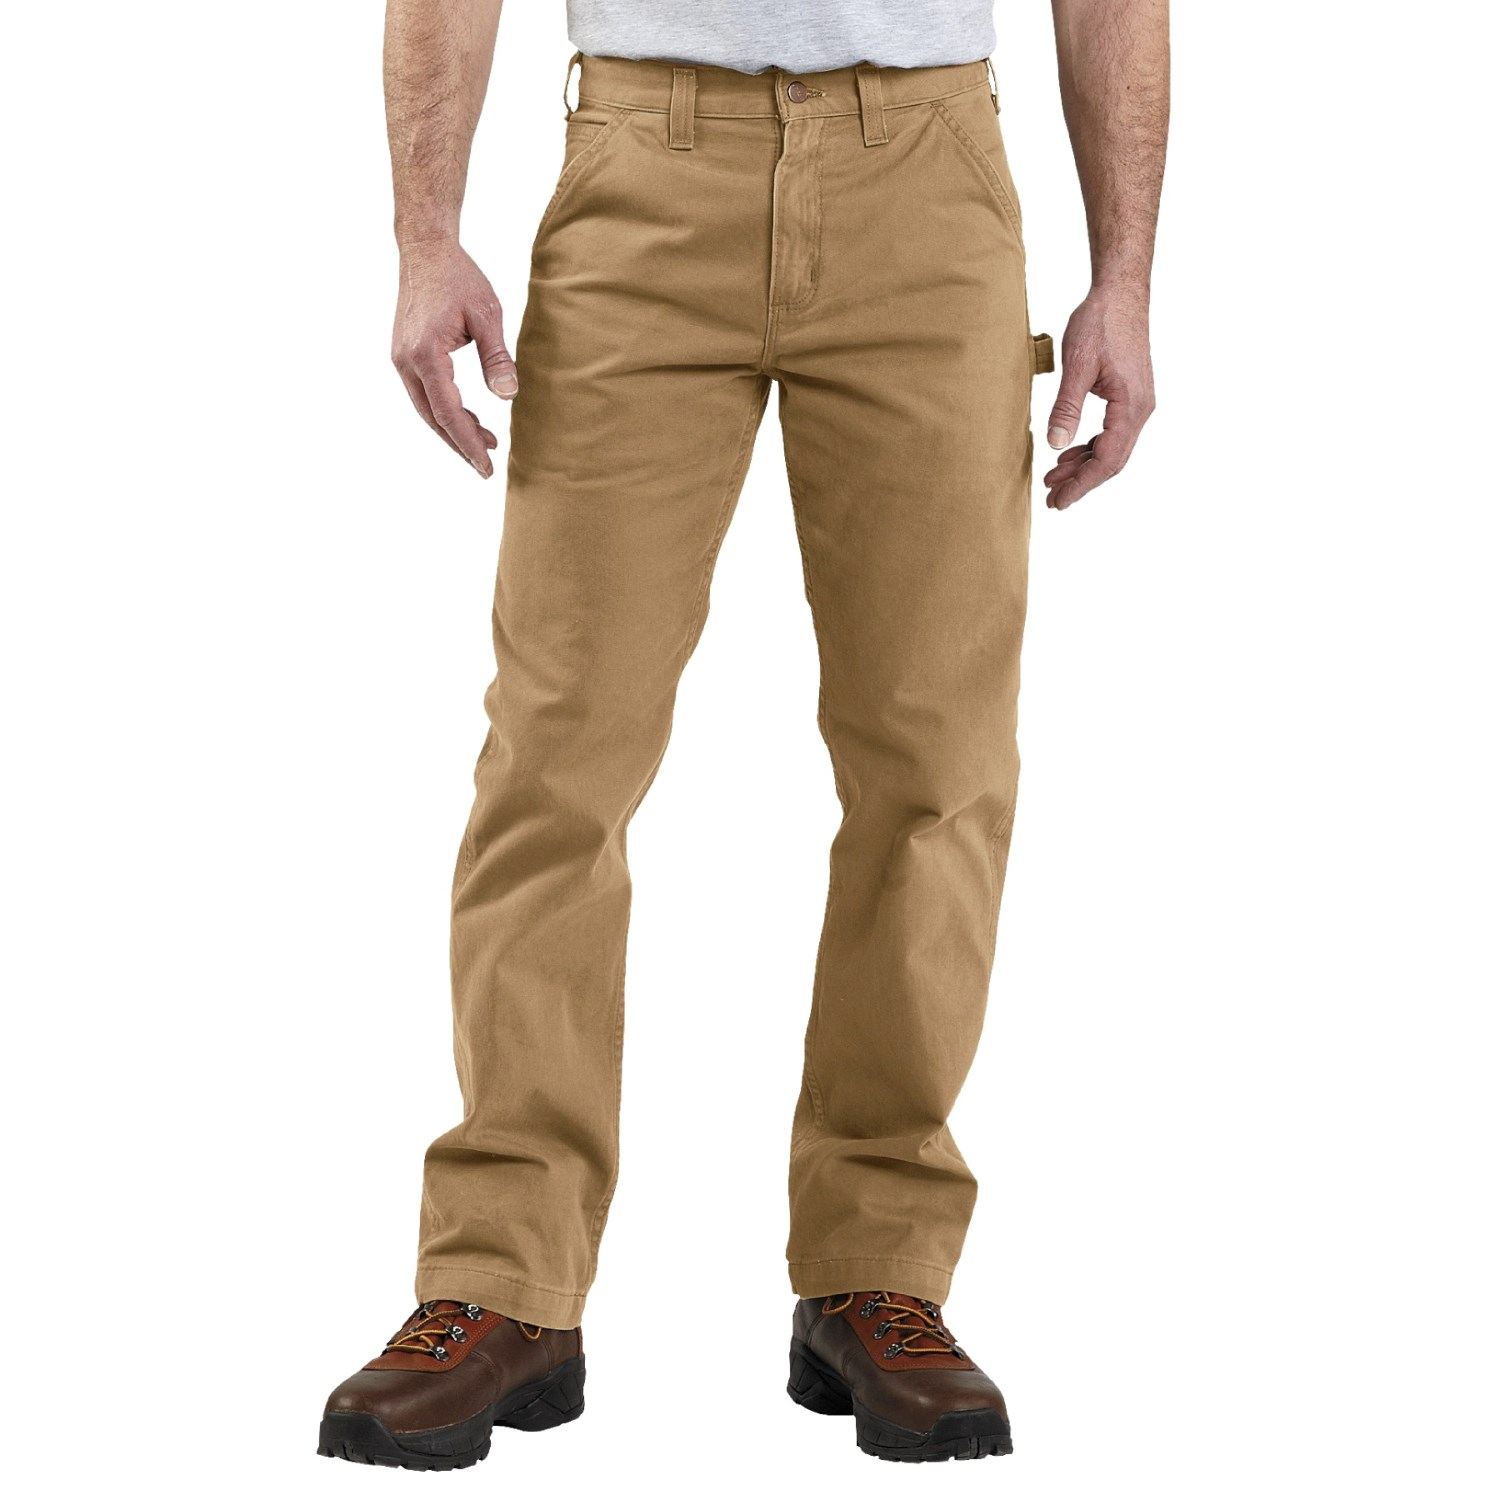 Image result for pants for men